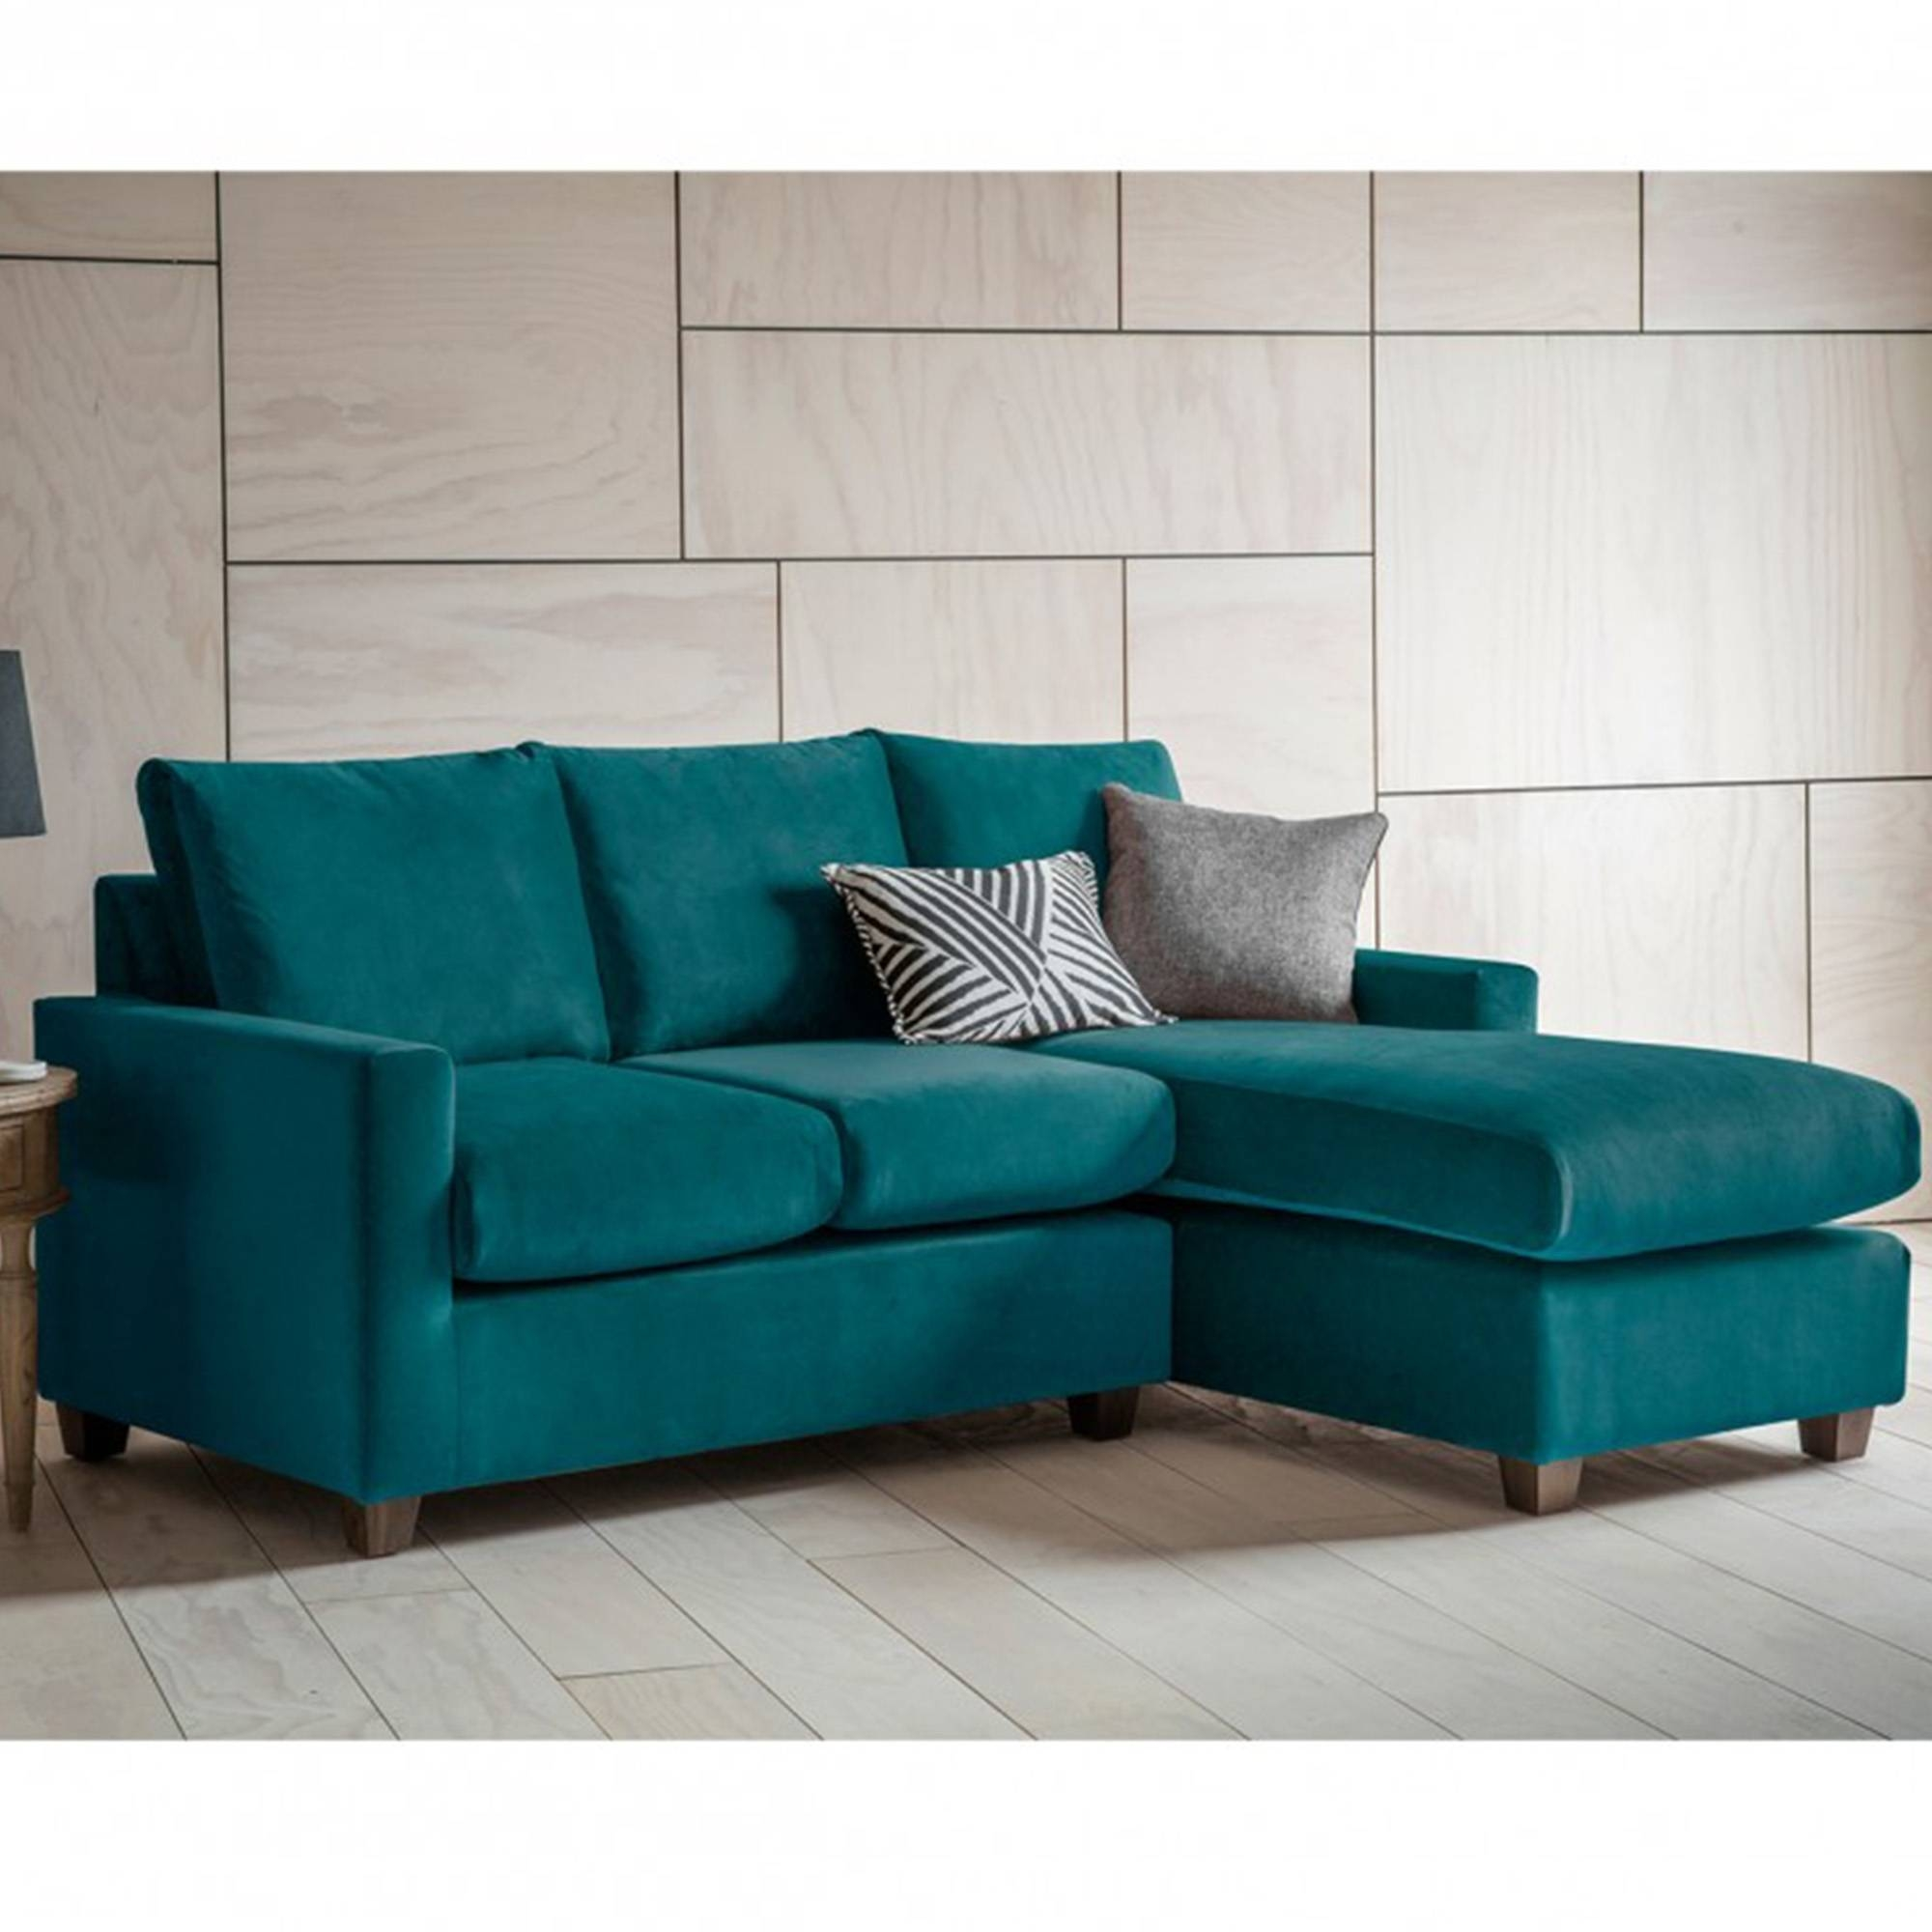 Brussels Petrol Stratford Lh Chaise Sofa | Seating Online From With Stratford Sofas (View 14 of 30)